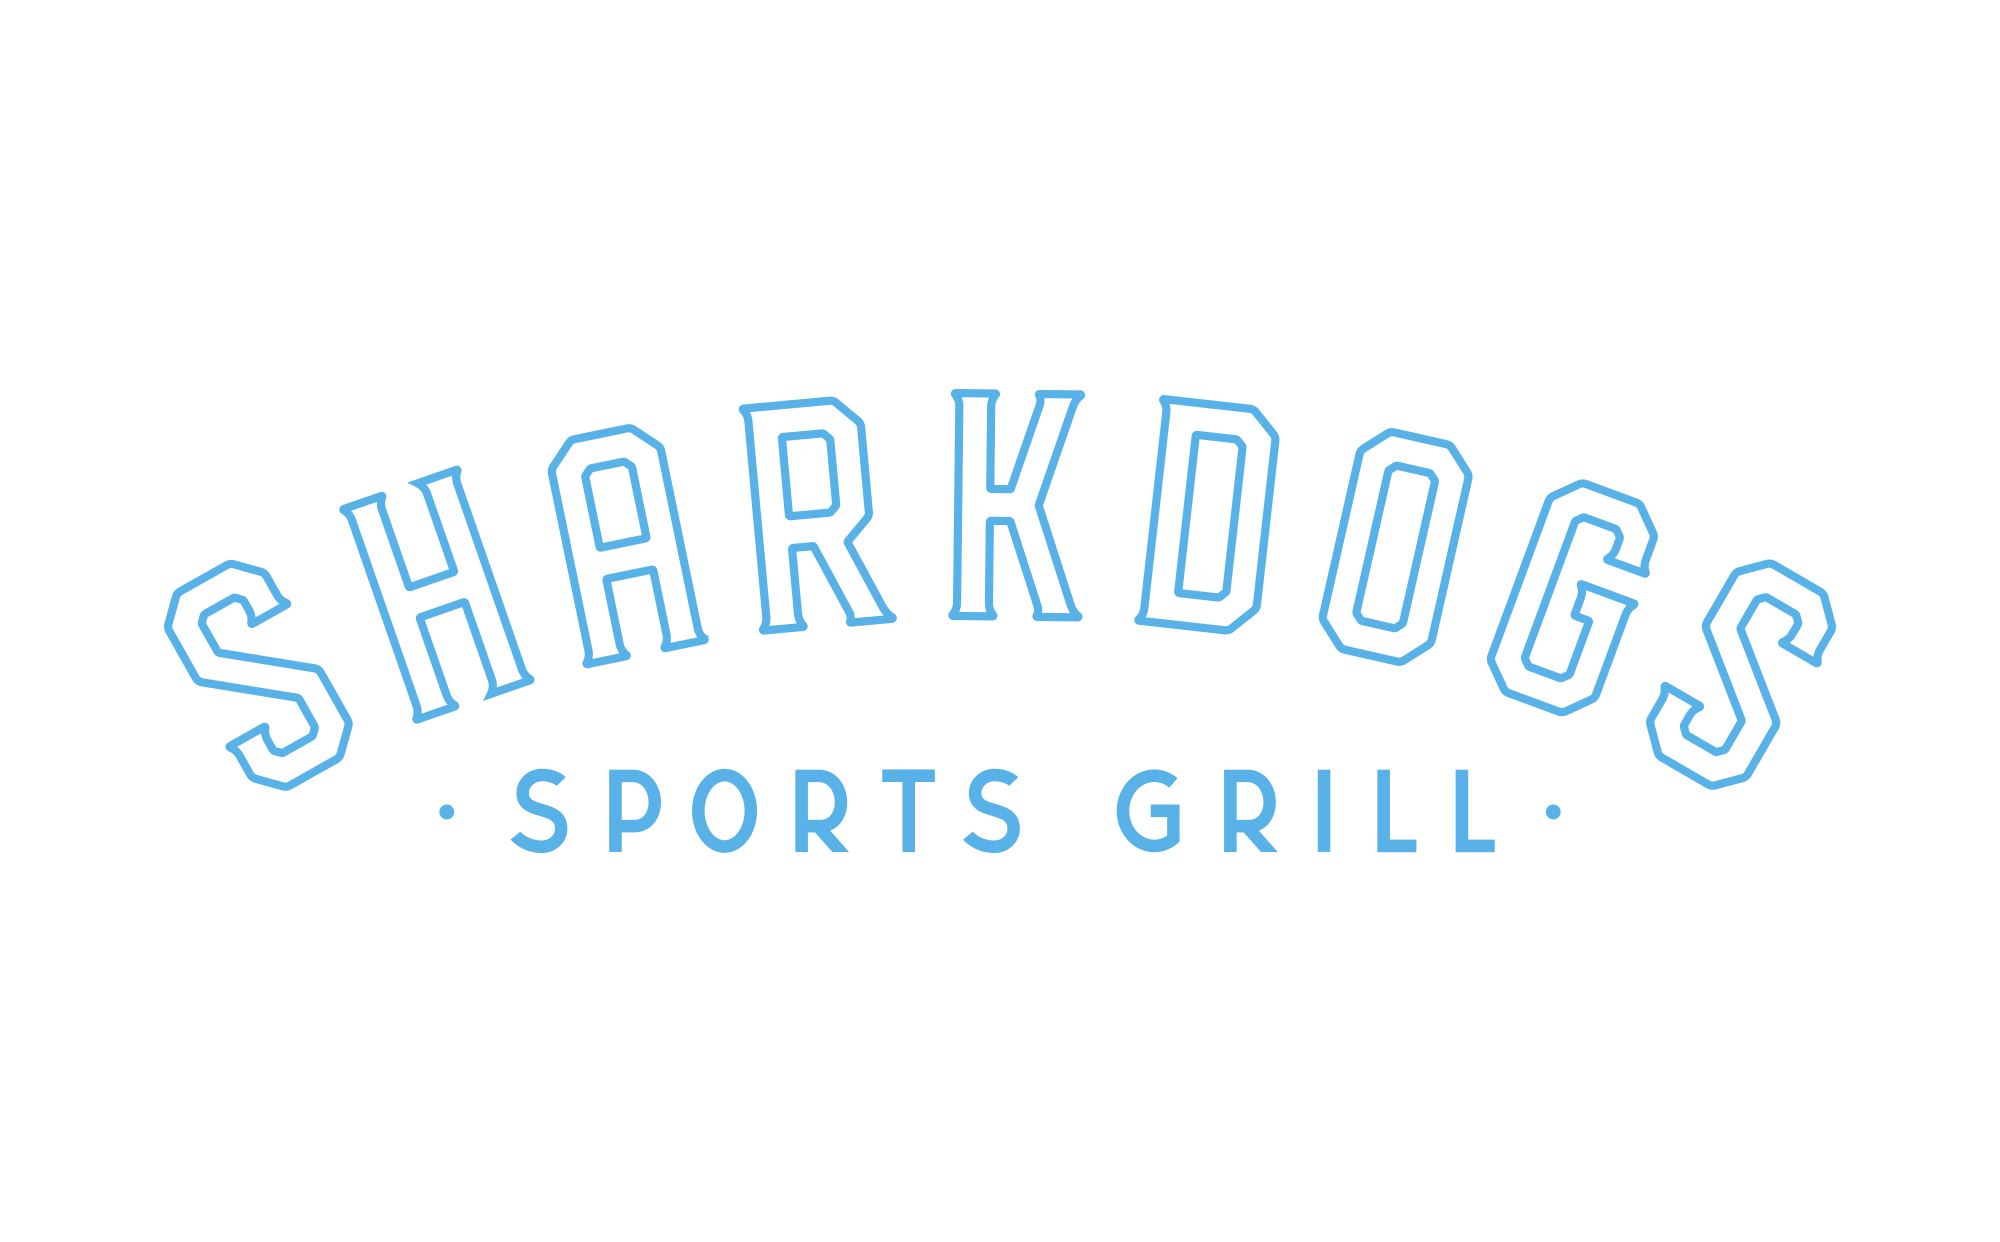 SHARKDOGS LOGO LARGE.png